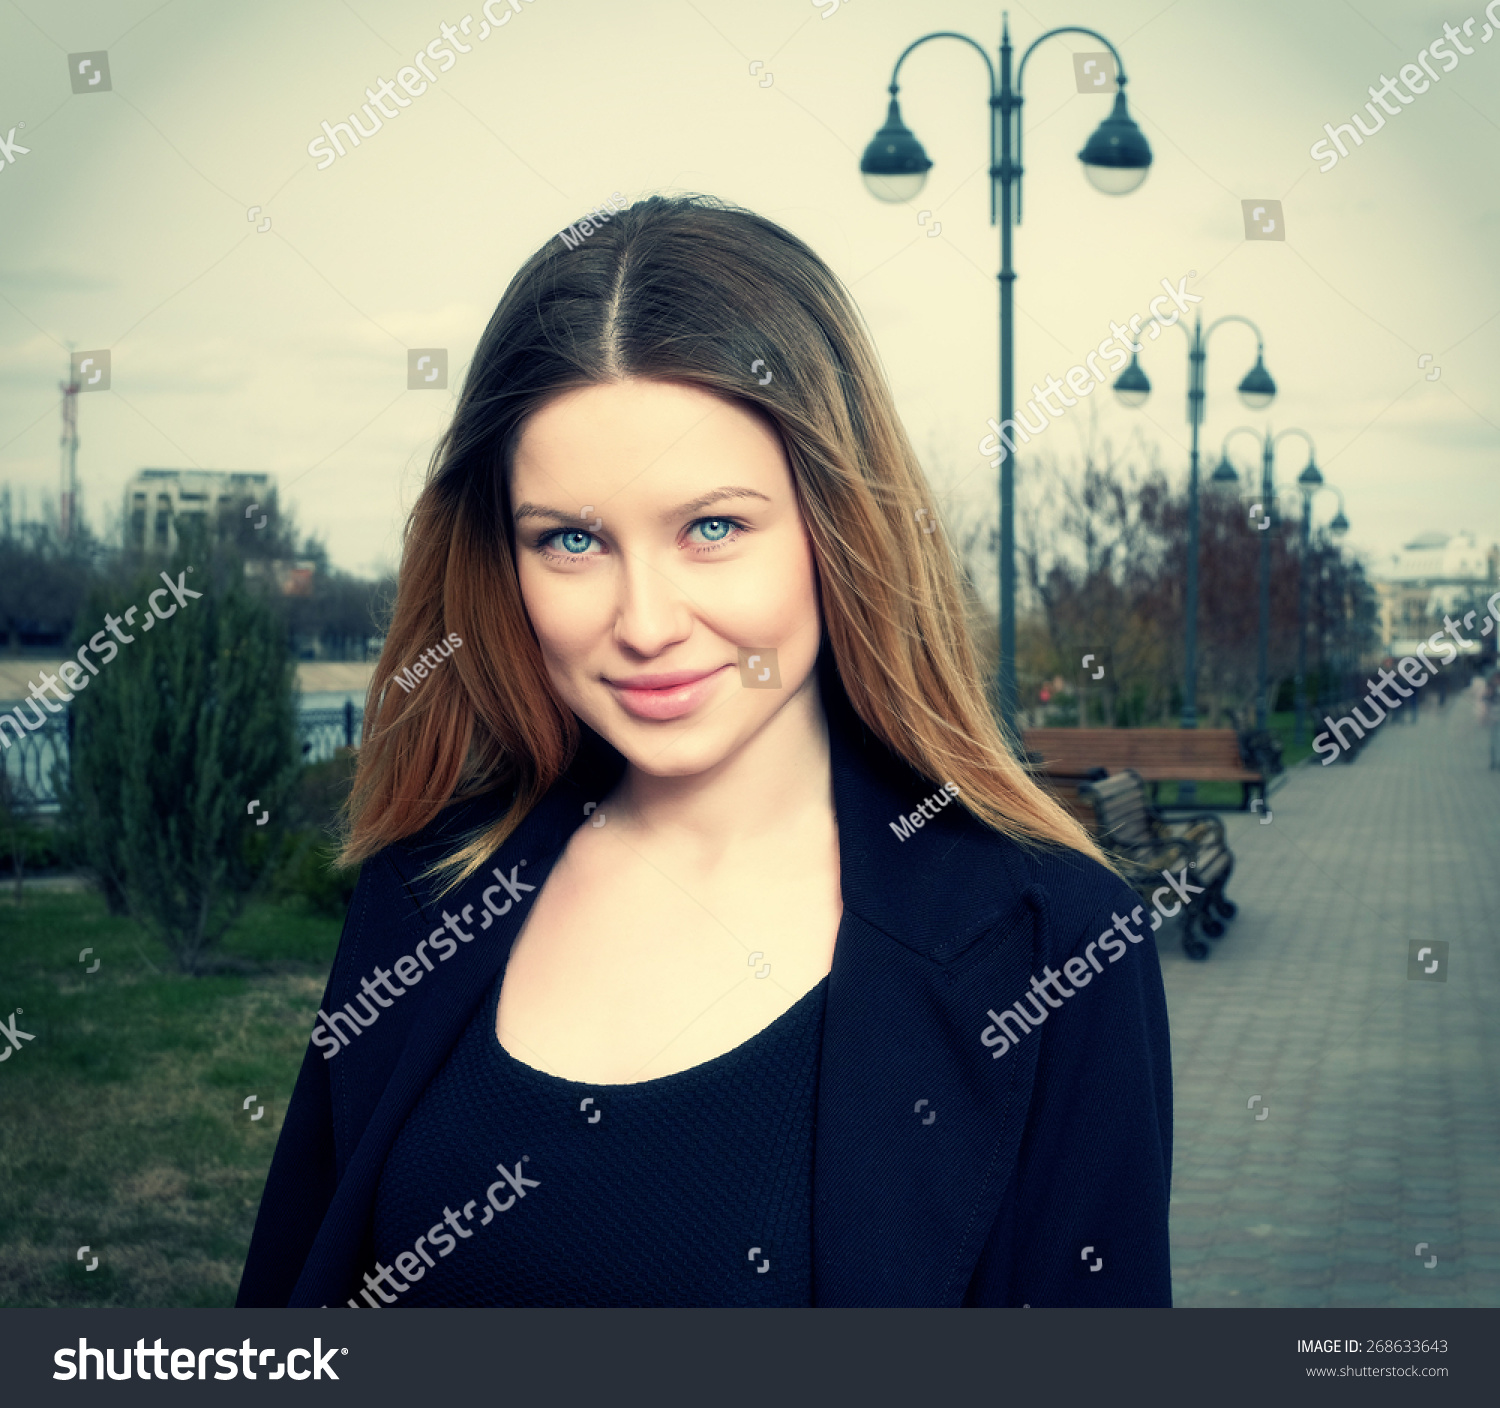 Smiling blond haired women toned instagram style image outdoors in the park front view head and shoulders shot